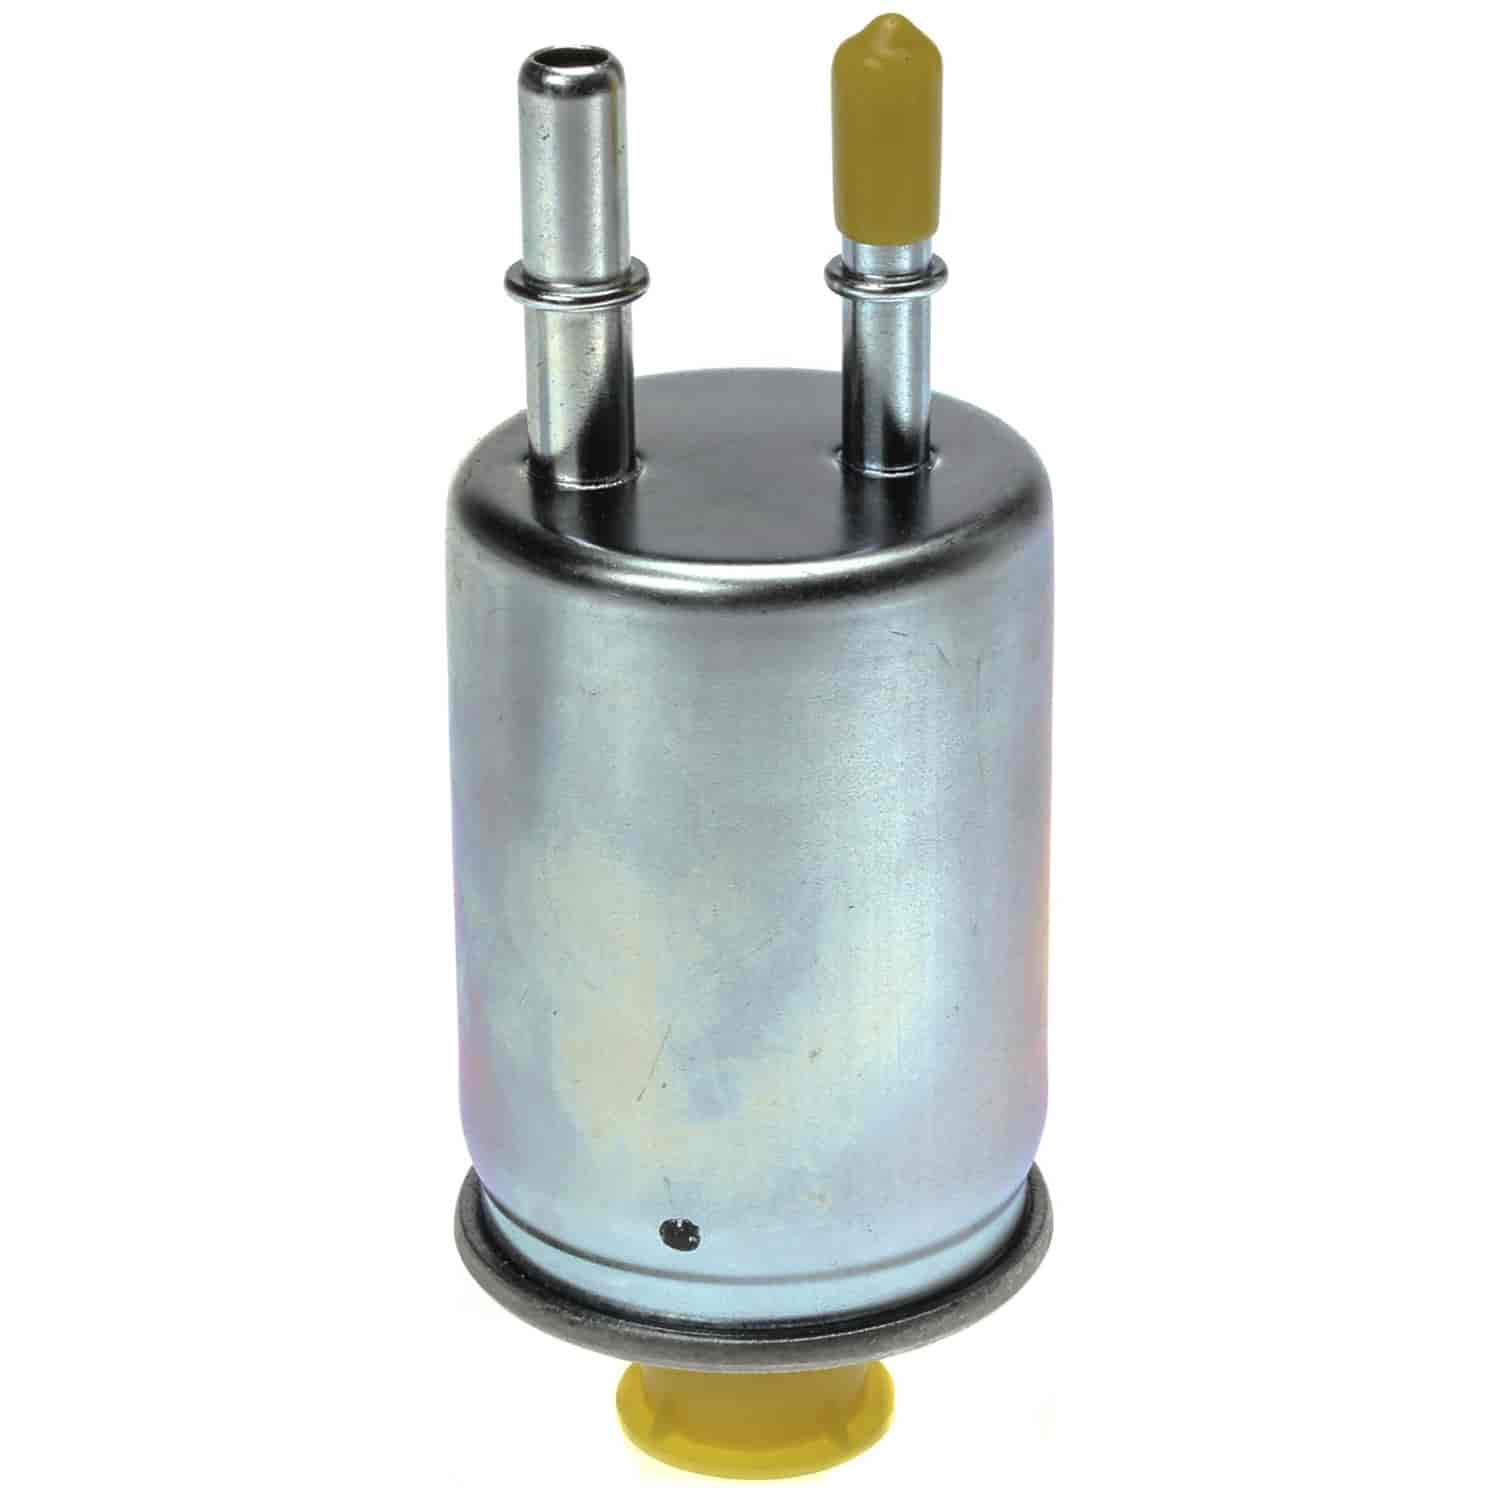 2010 chevy cobalt fuel filter clevite mahle klh845: mahle fuel filter chevy cobalt 2.0l ecotec sc 2005-2010 2.2l ecotec 2005 ... chevy cobalt fuel filter location